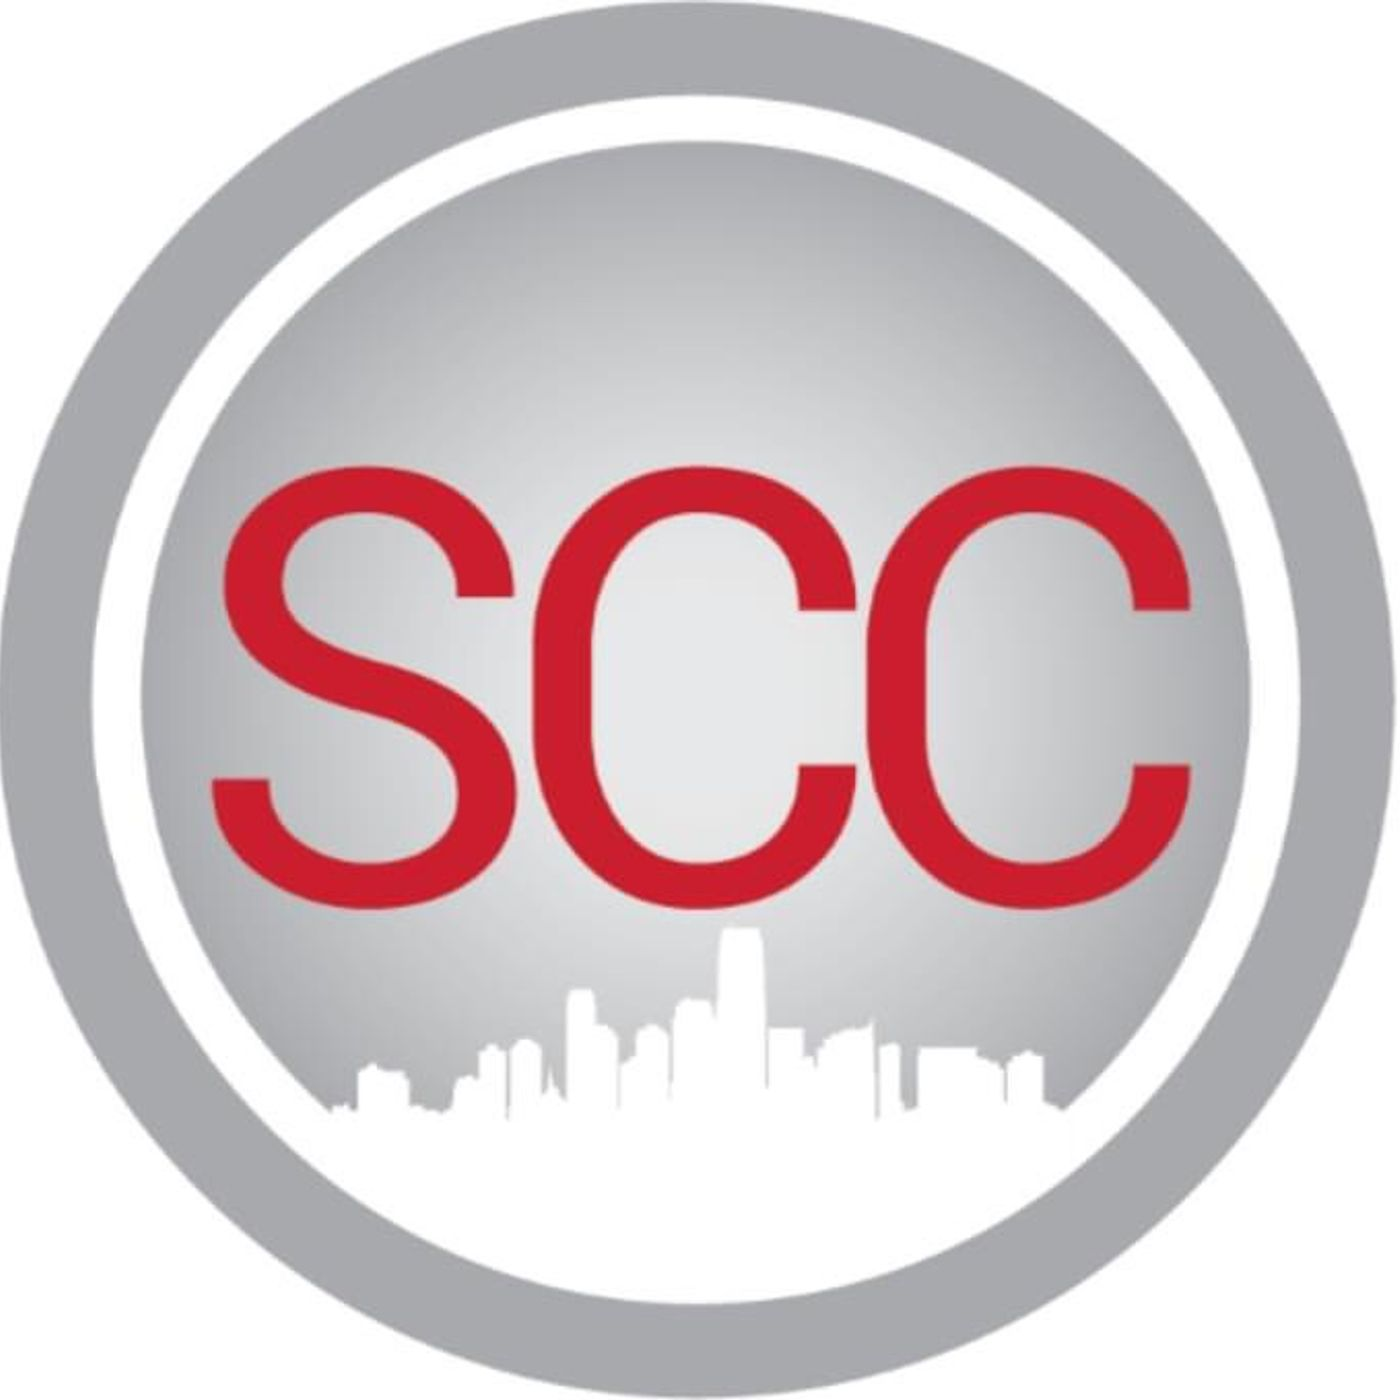 SCC- A message from Pastor Irene- good things in 61605